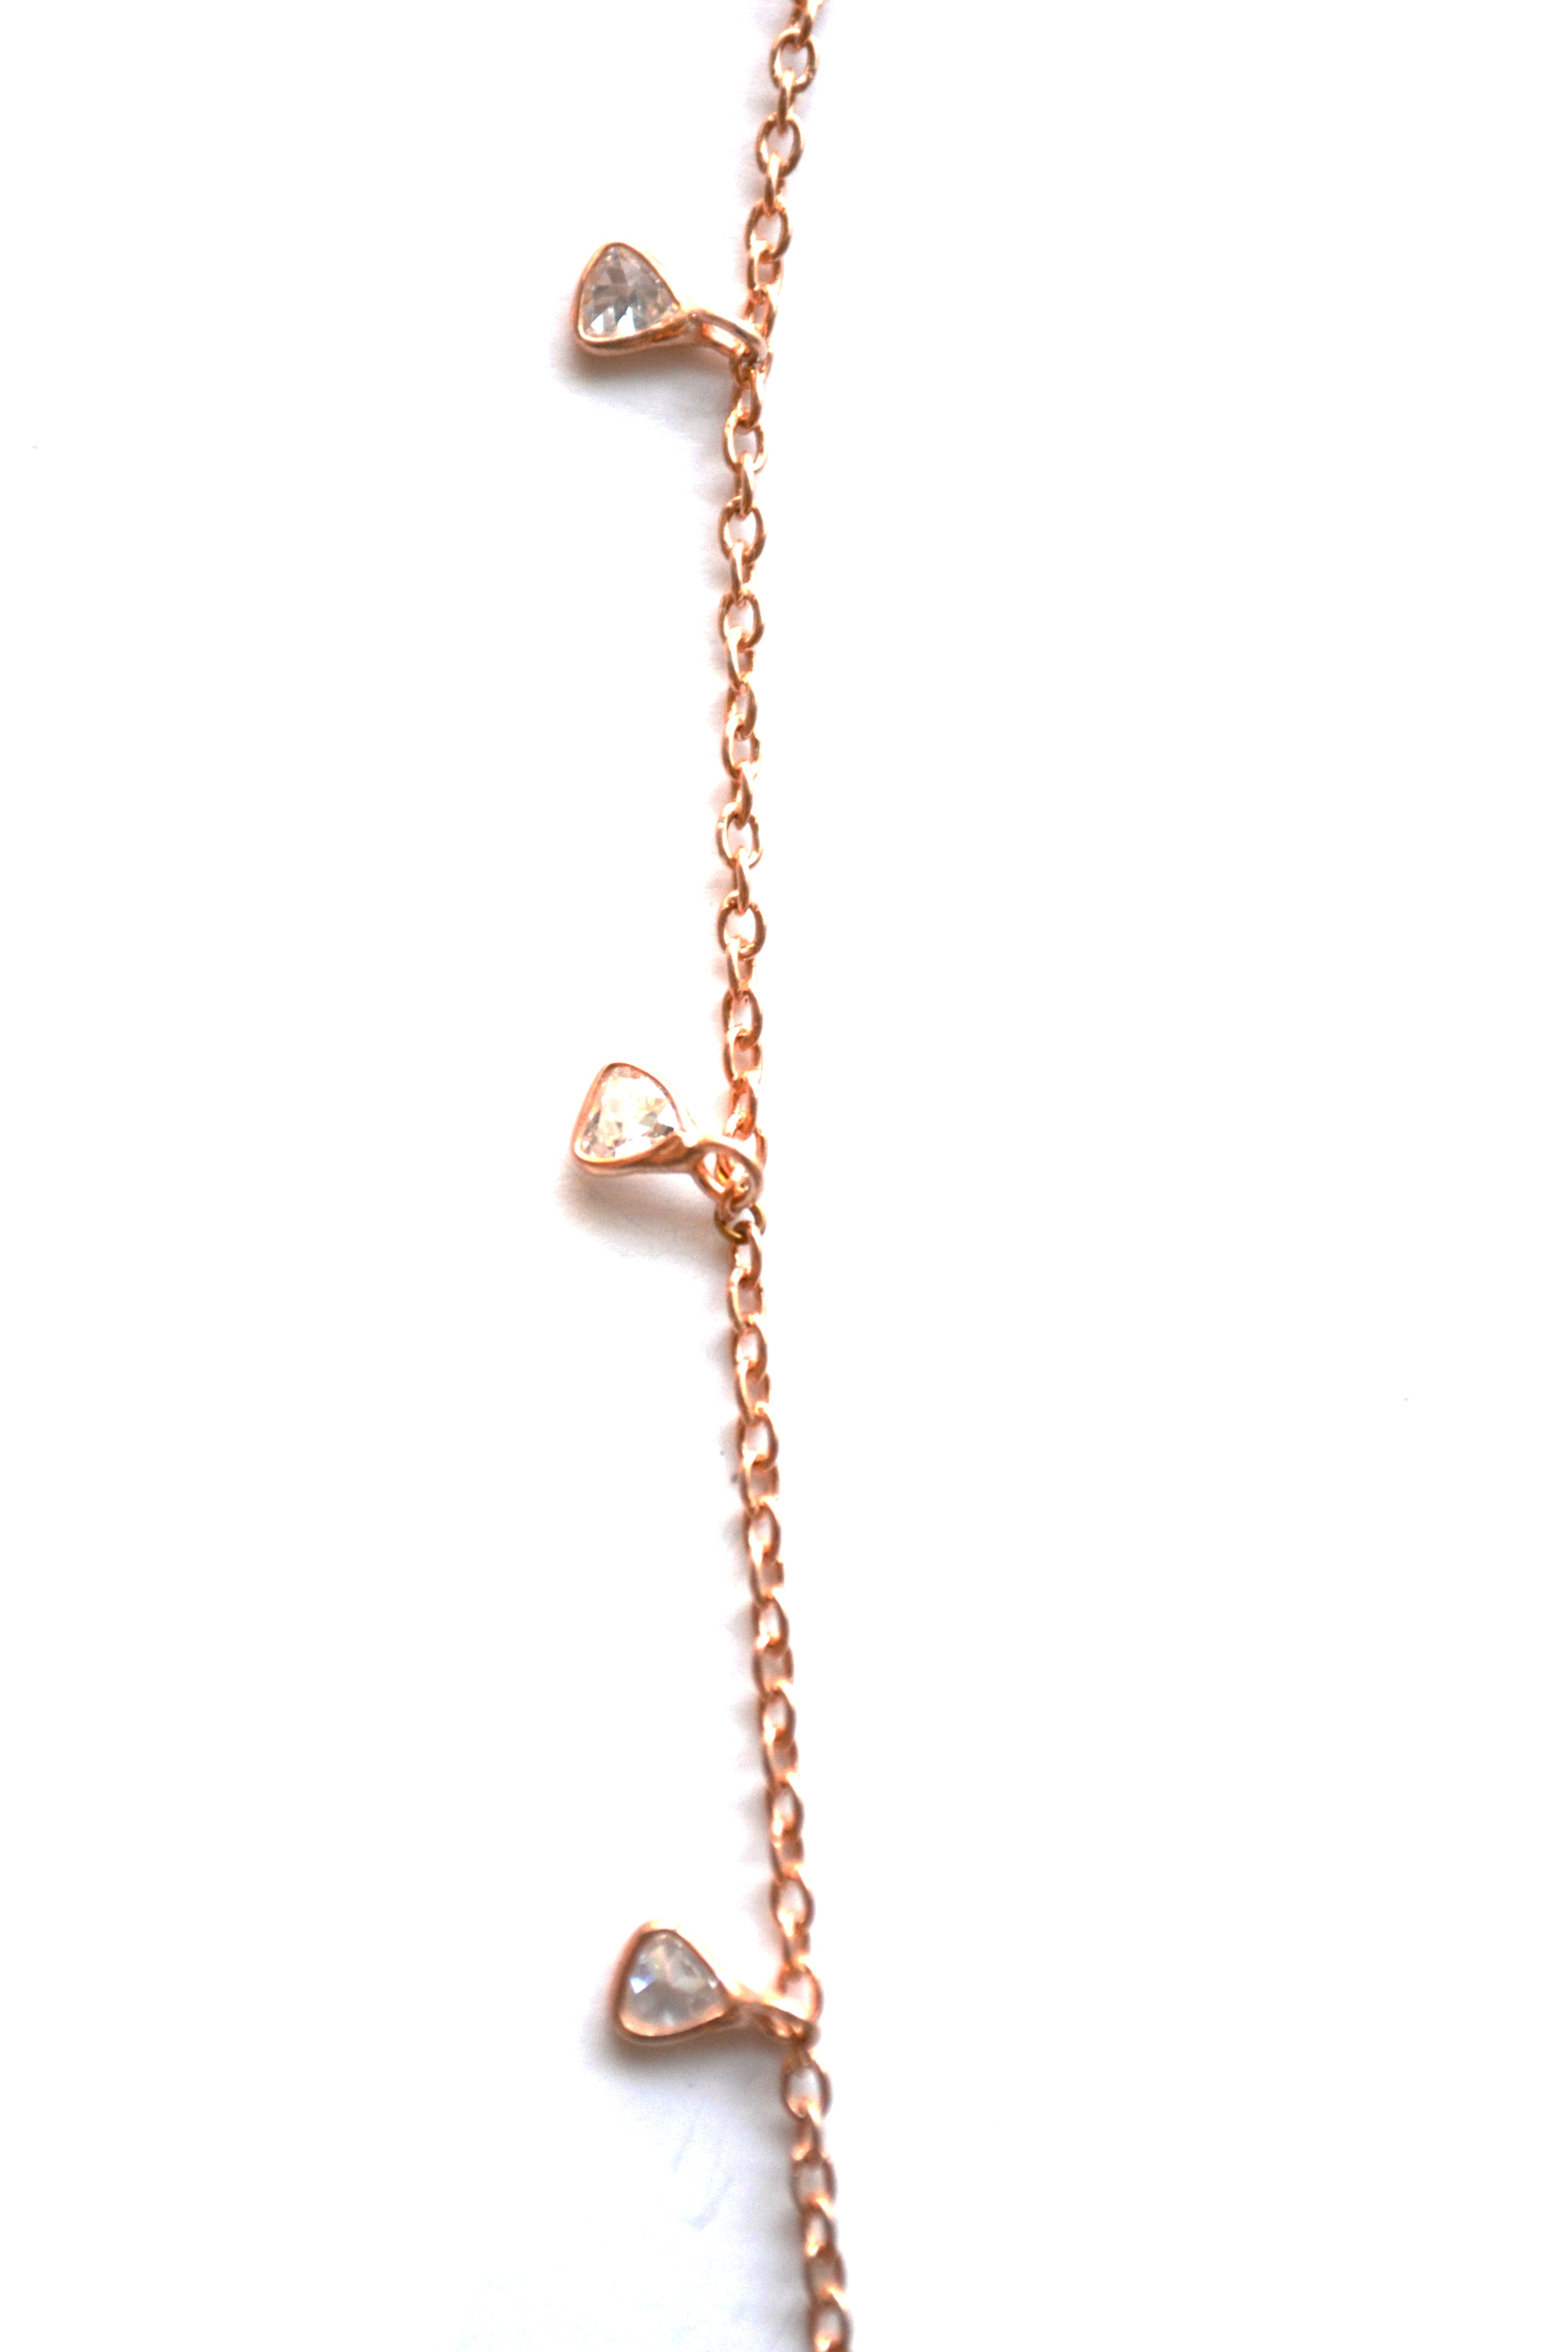 Rose Gold Celestial Diamond Necklace with a Tear Drop Charm